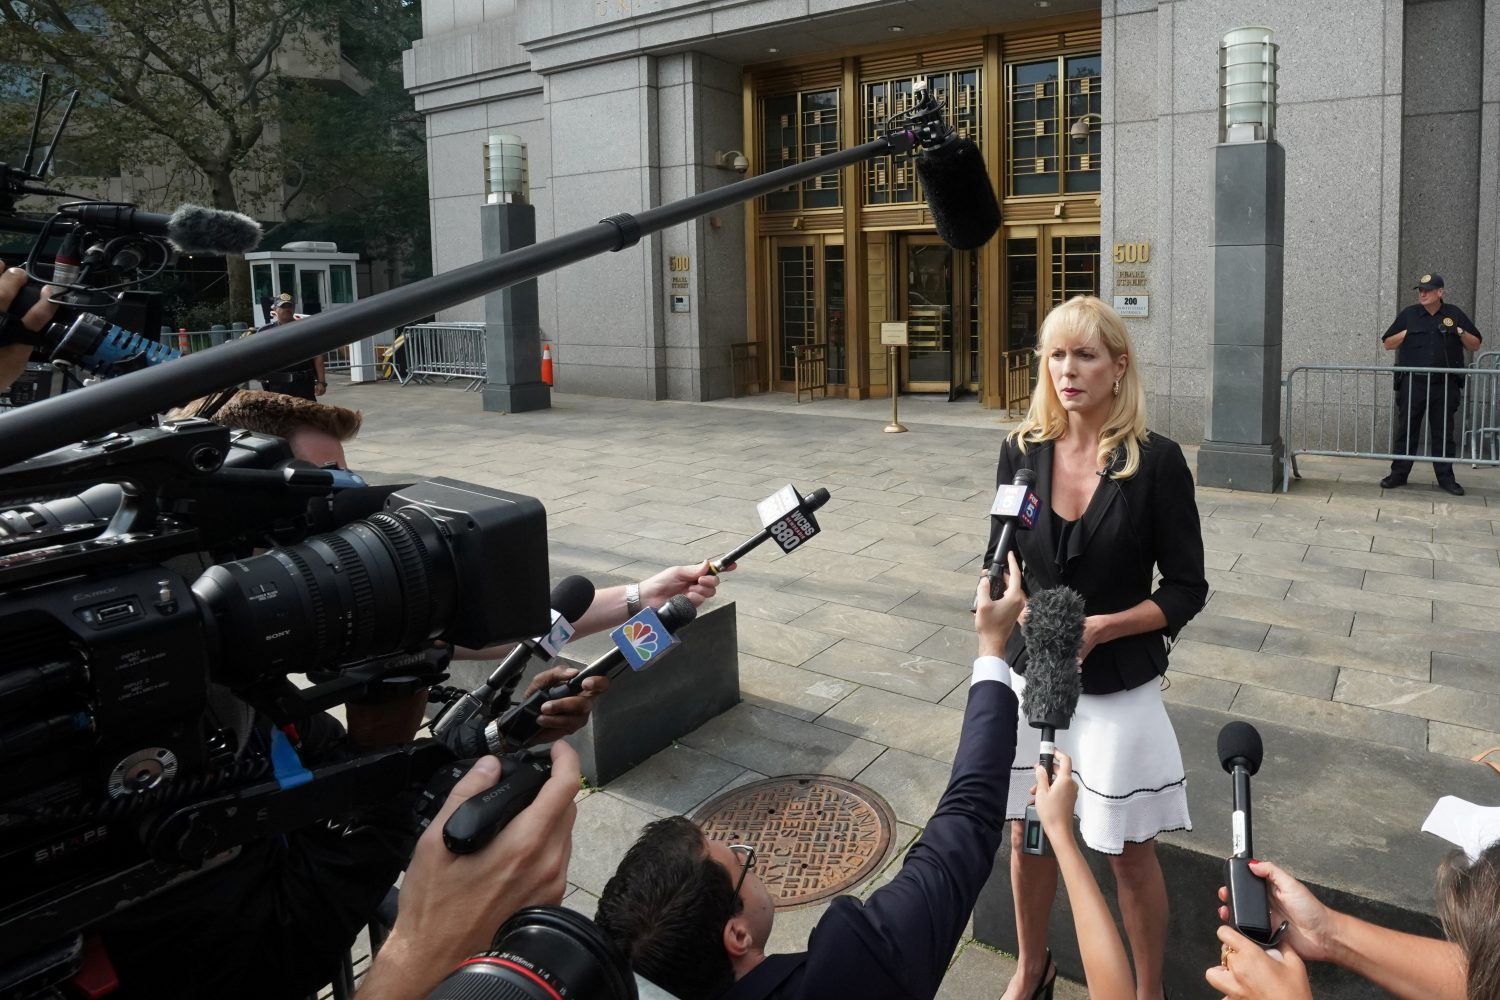 Attorney Sigrid McCawley, lawyer for Jeffrey Epstein's alleged victims, speaks outside Manhattan Federal Court following a hearing in a defamation lawsuit filed by one of Jeffrey Epstein's alleged victims, Virginia Giuffre, in New York, U.S., September 4, 2019. REUTERS/Bryan R Smith